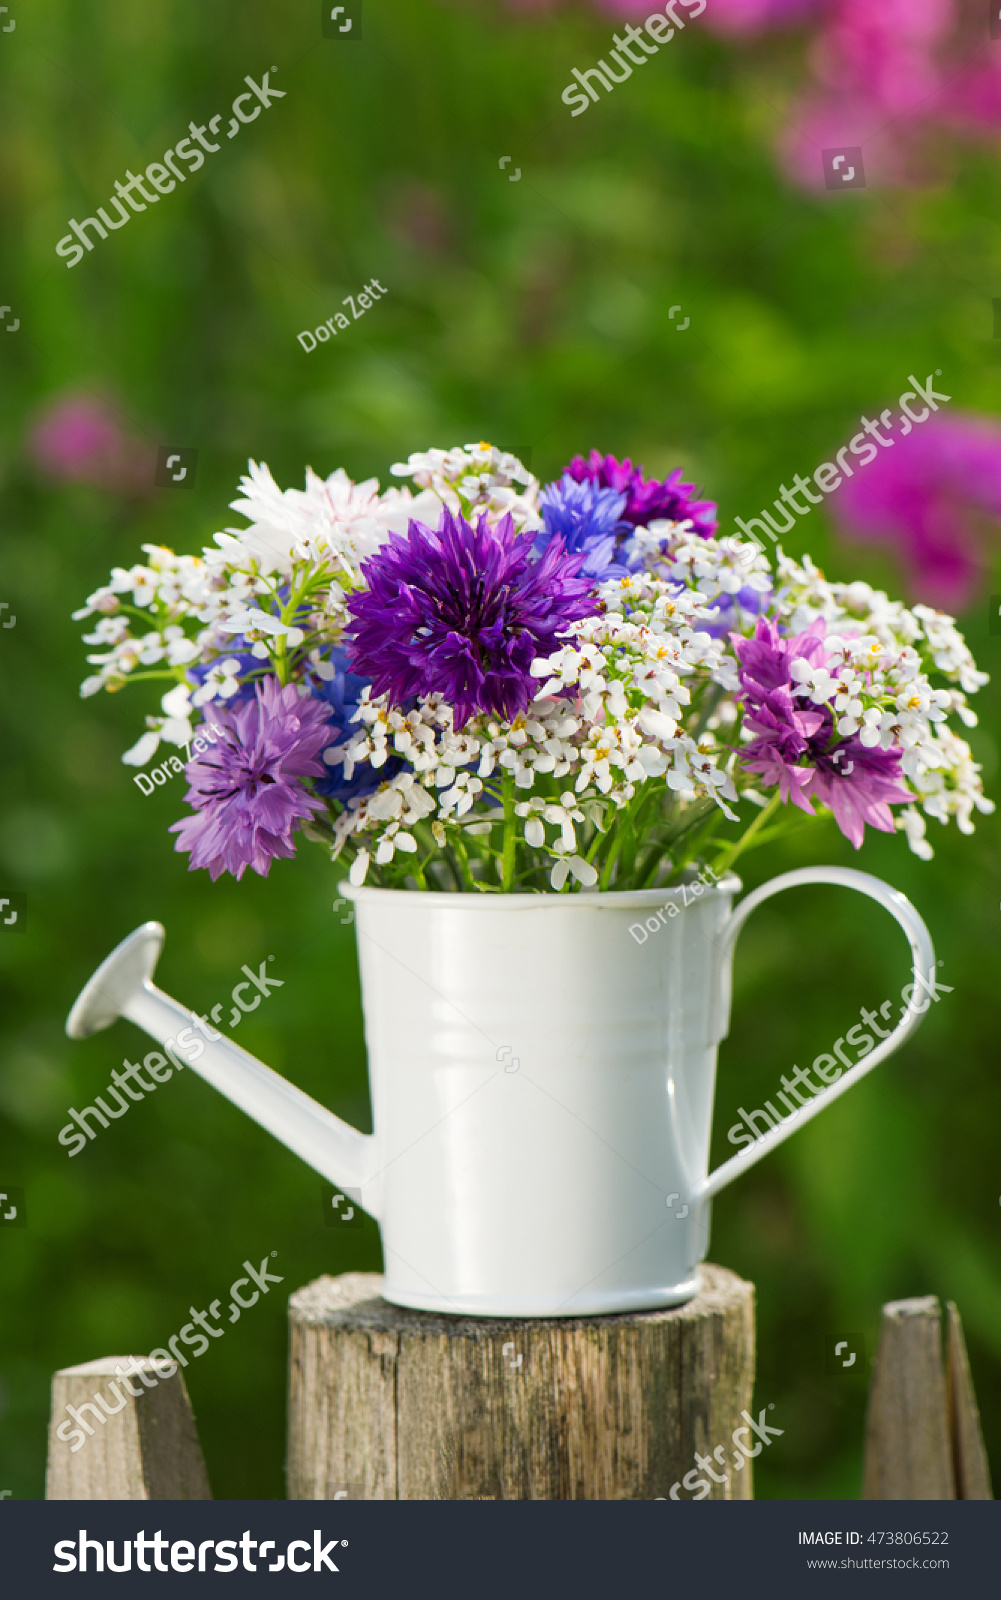 Bouquet of purple flowers in small bucket - horizontal | EZ Canvas